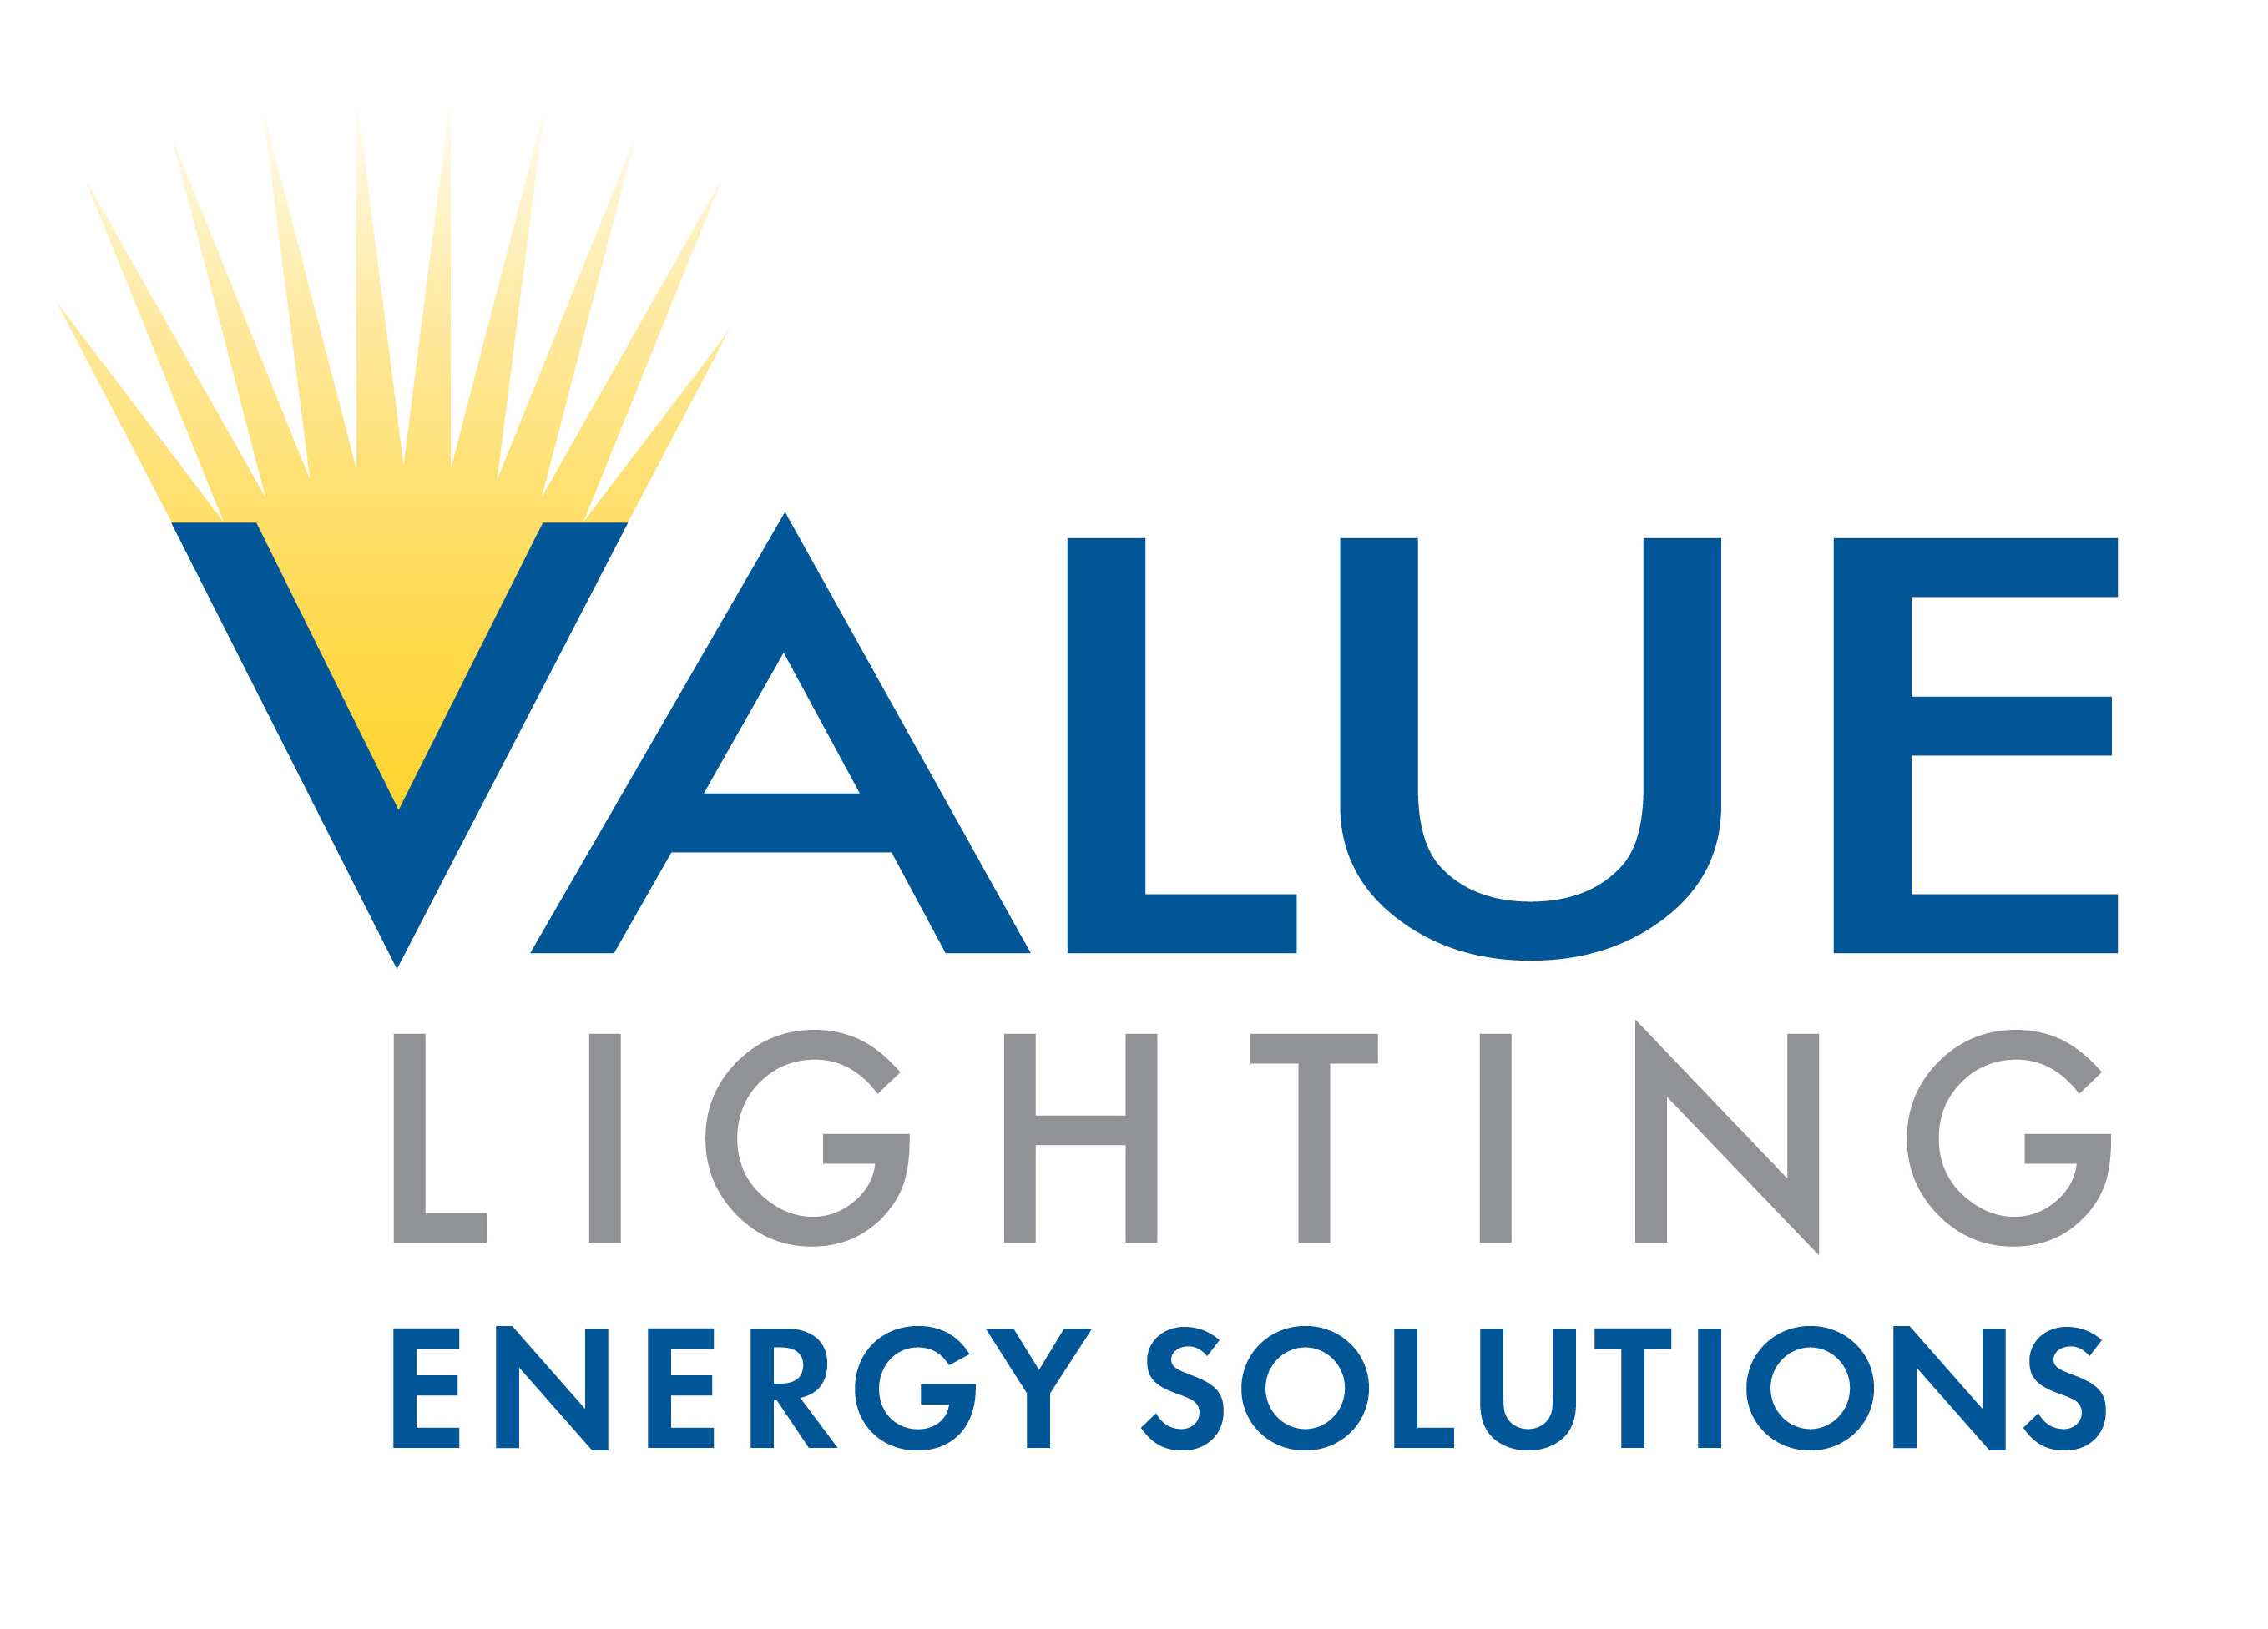 Value energy solutions completes warehouse office lighting - Interior exterior building supply ...